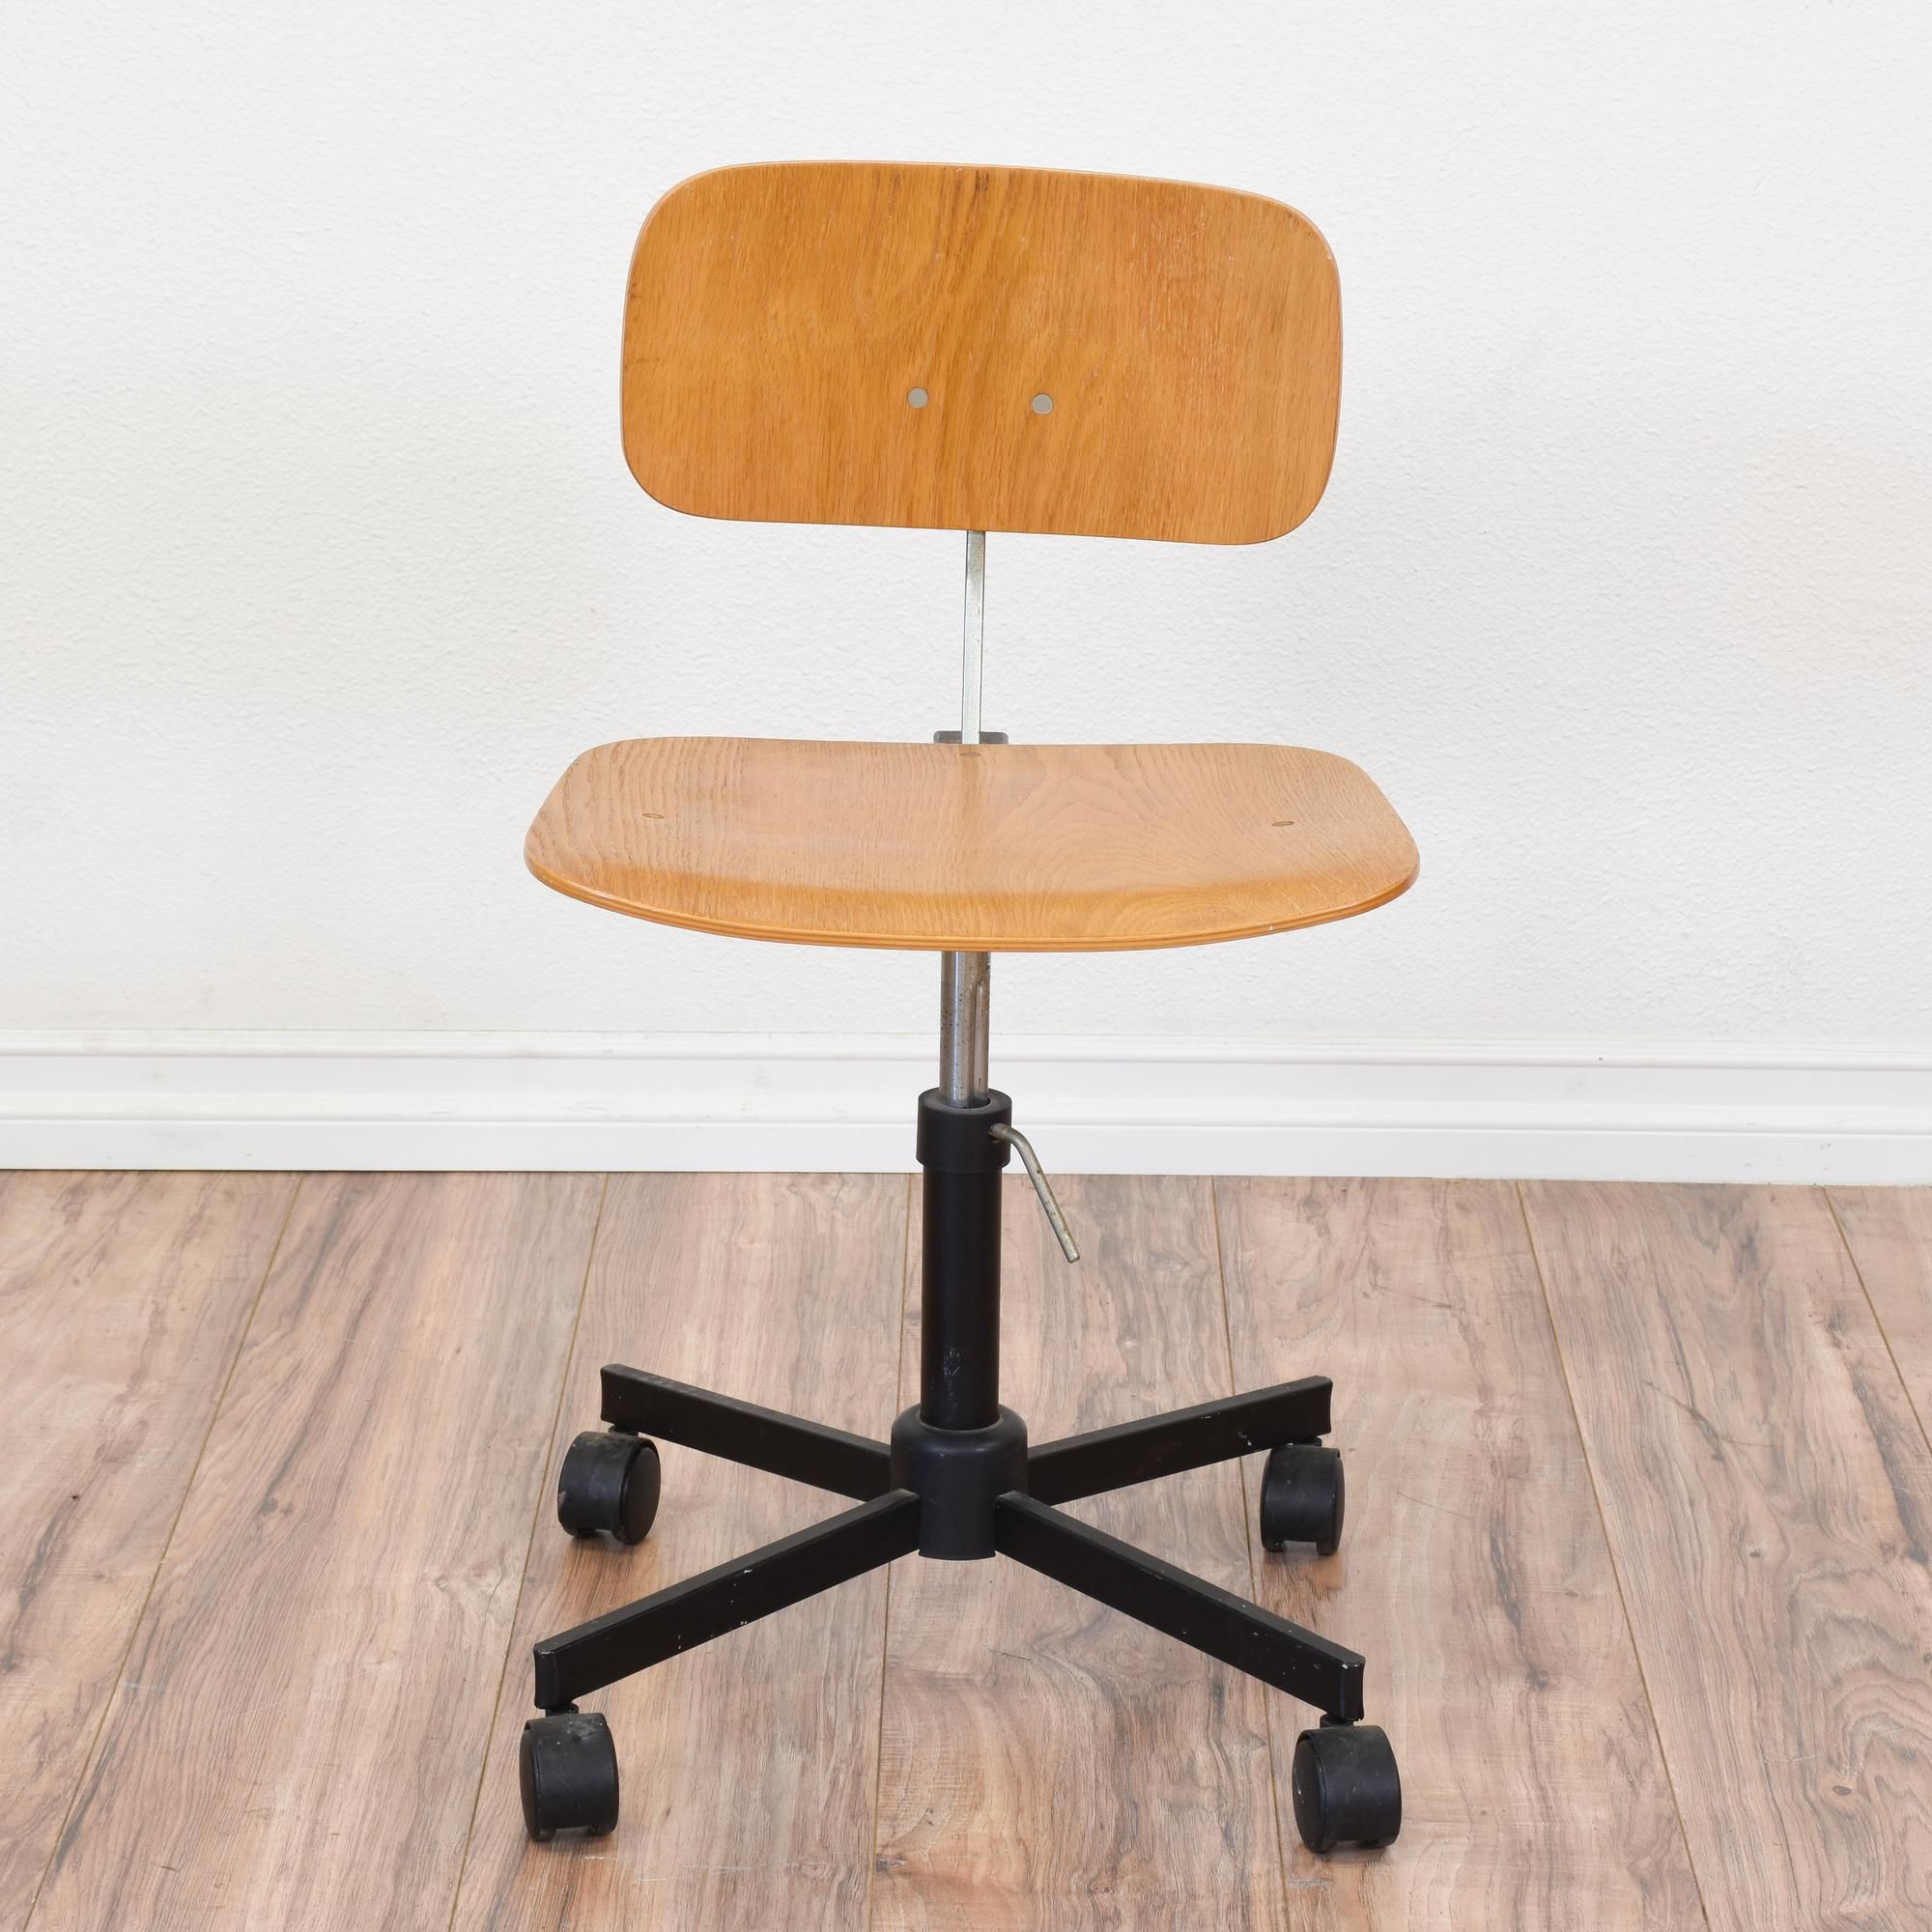 This danish modern chair is featured in a solid thin wood with a